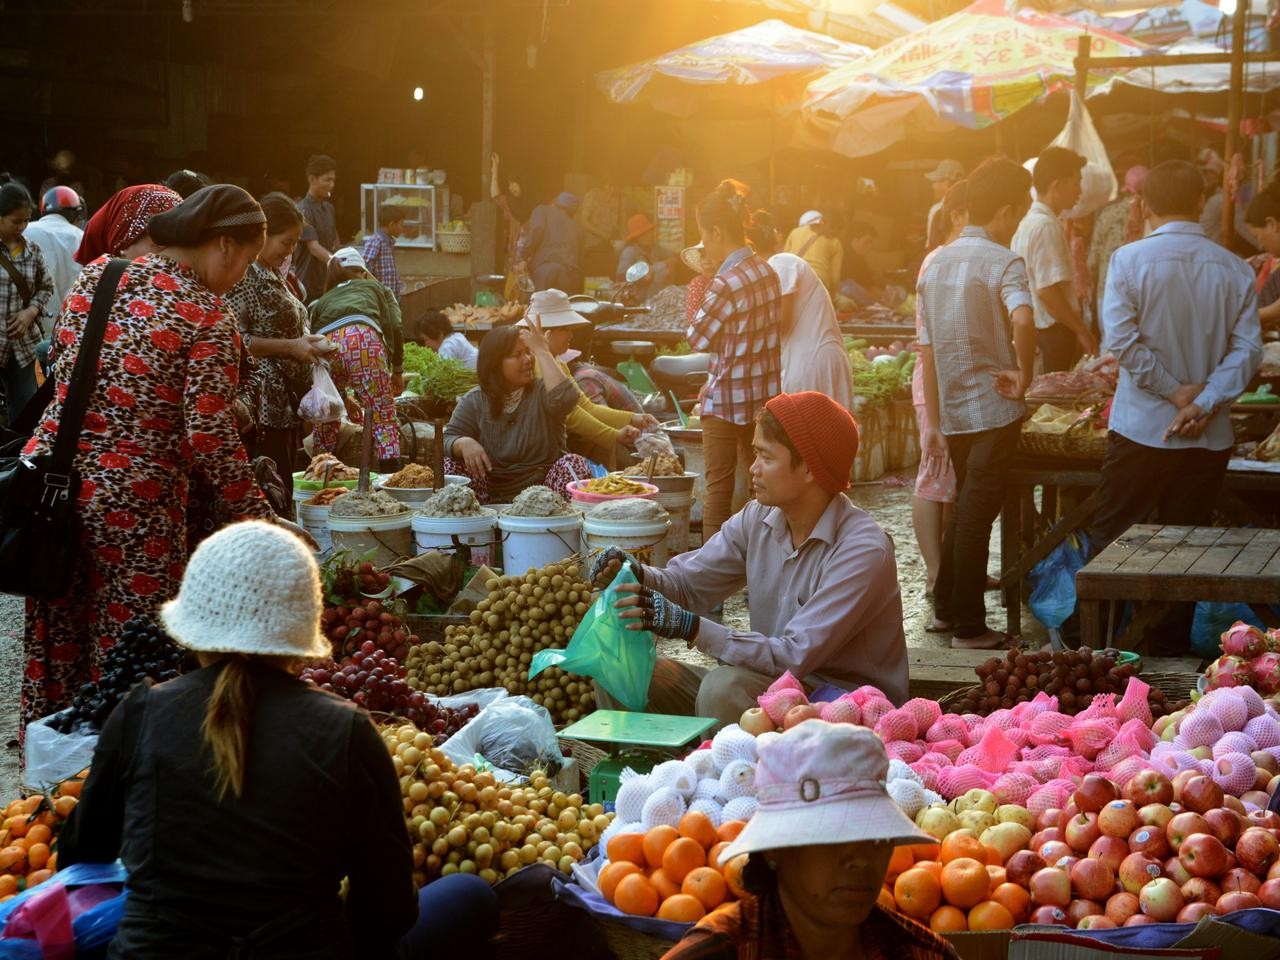 CAMBODIA SIEM REAP MORNING MARKET